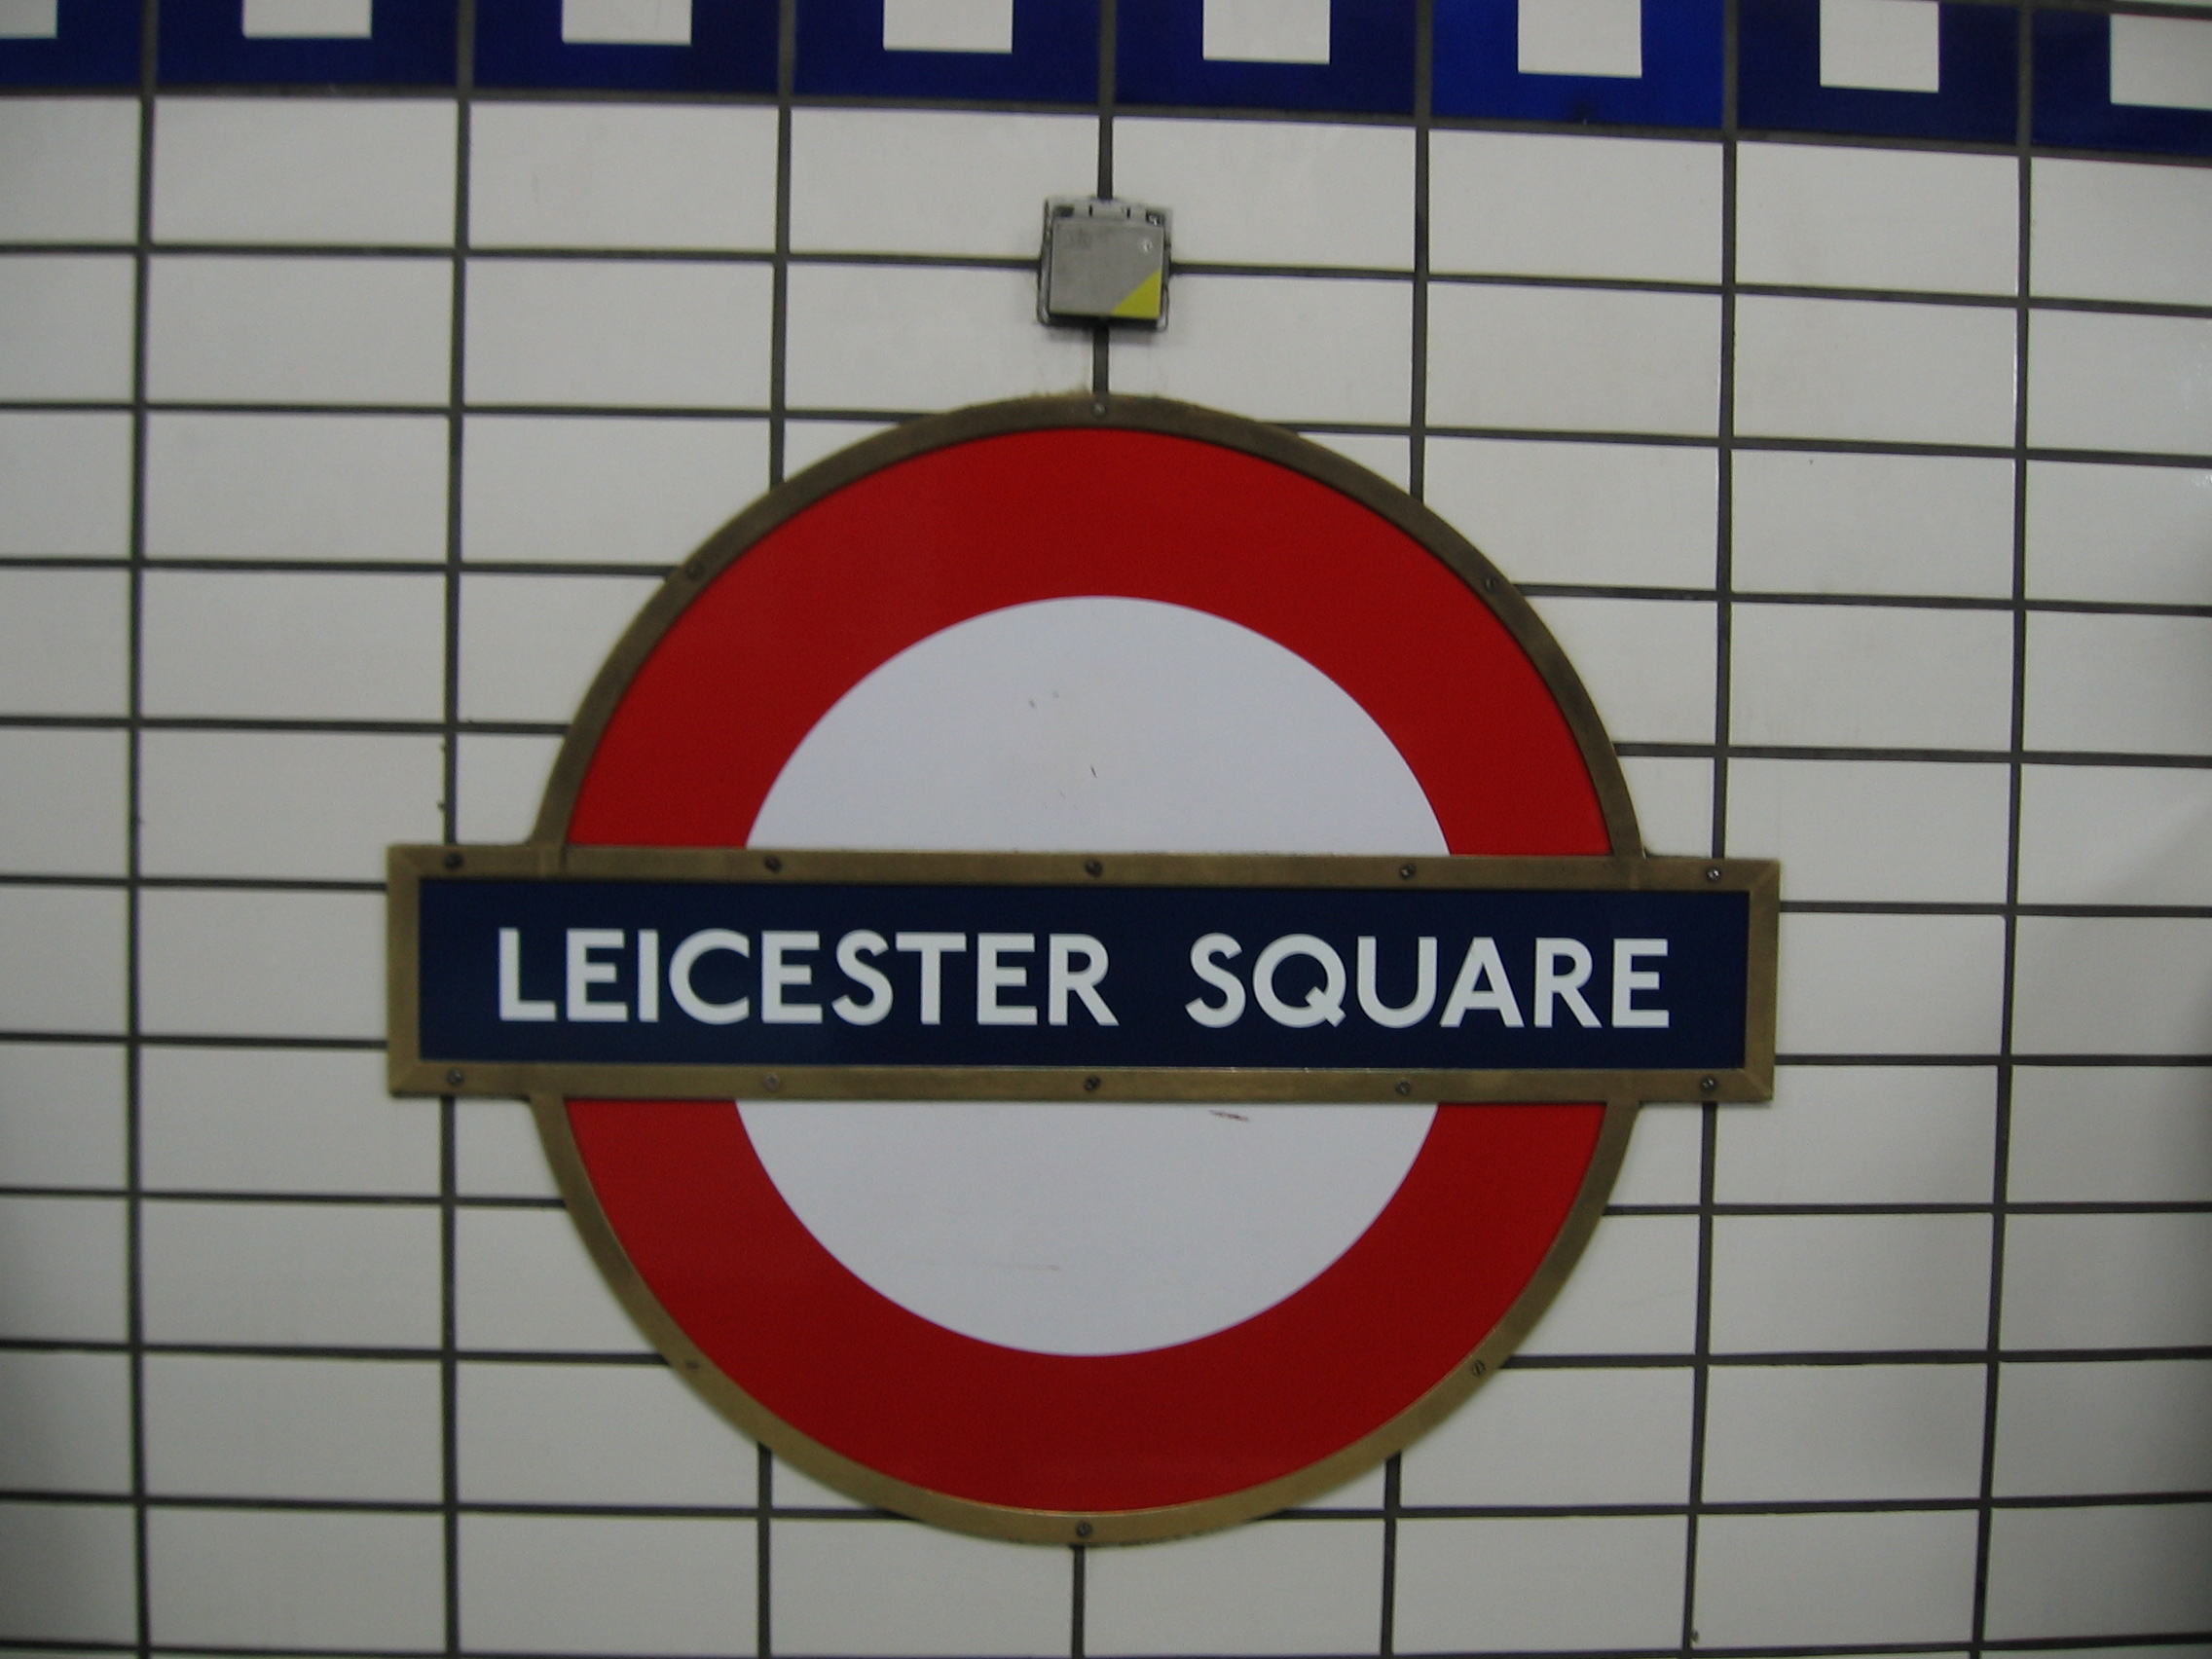 Fileleicester Square Tube Station Logog Wikimedia Commons